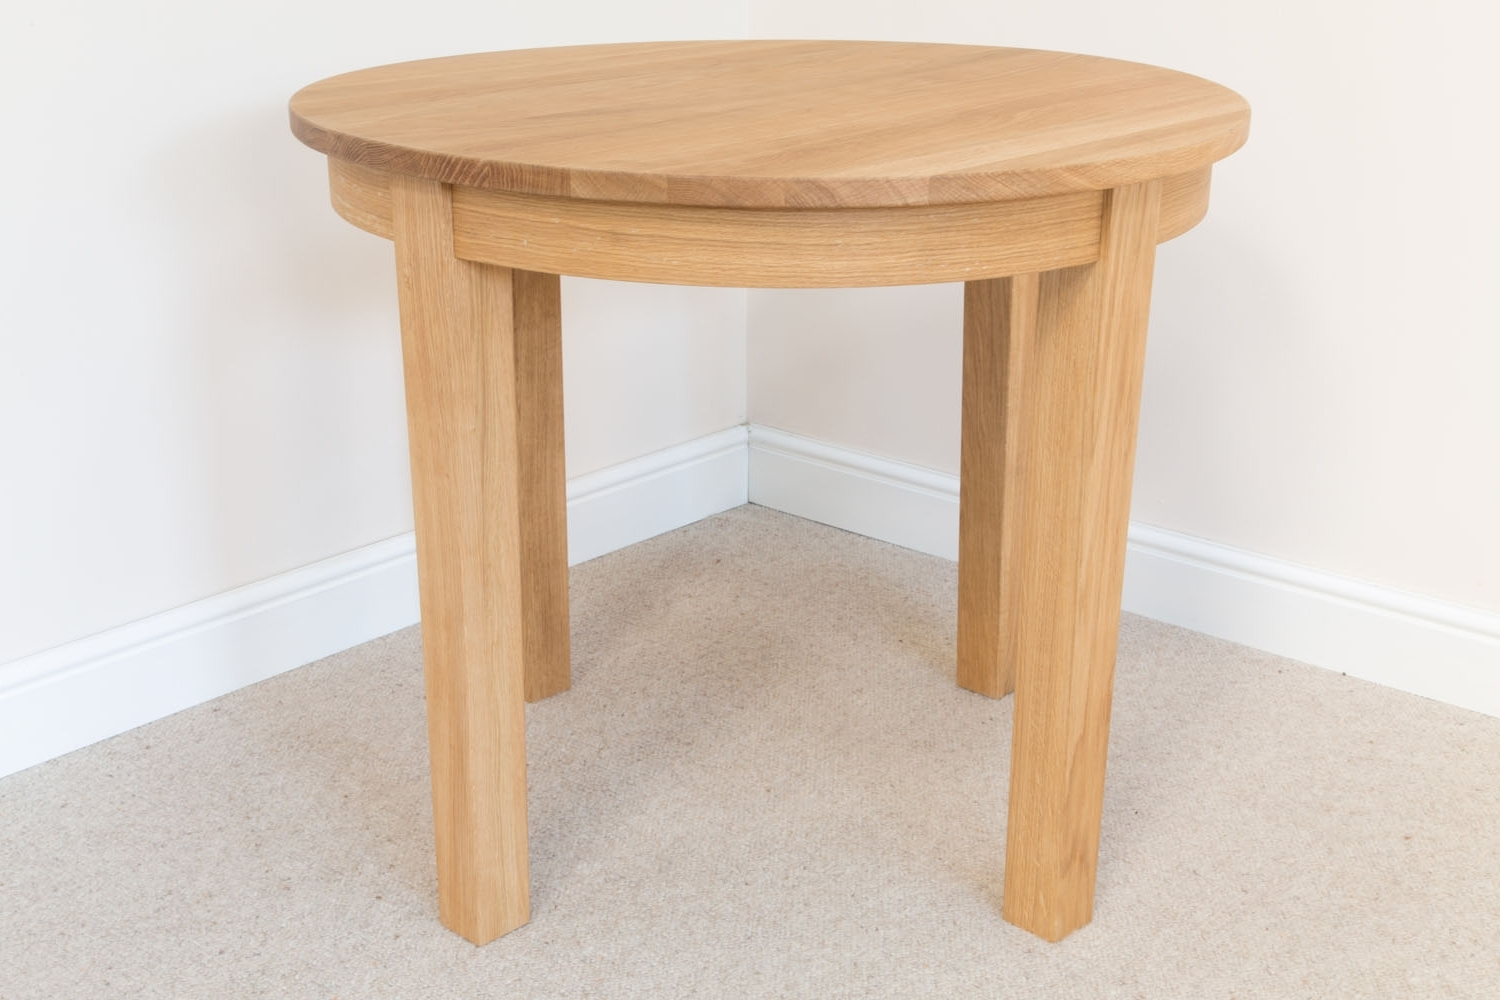 90Cm Round Baltic Premium Solid Oak Table From Top Furniture Ltd In Preferred Circular Oak Dining Tables (Gallery 9 of 25)